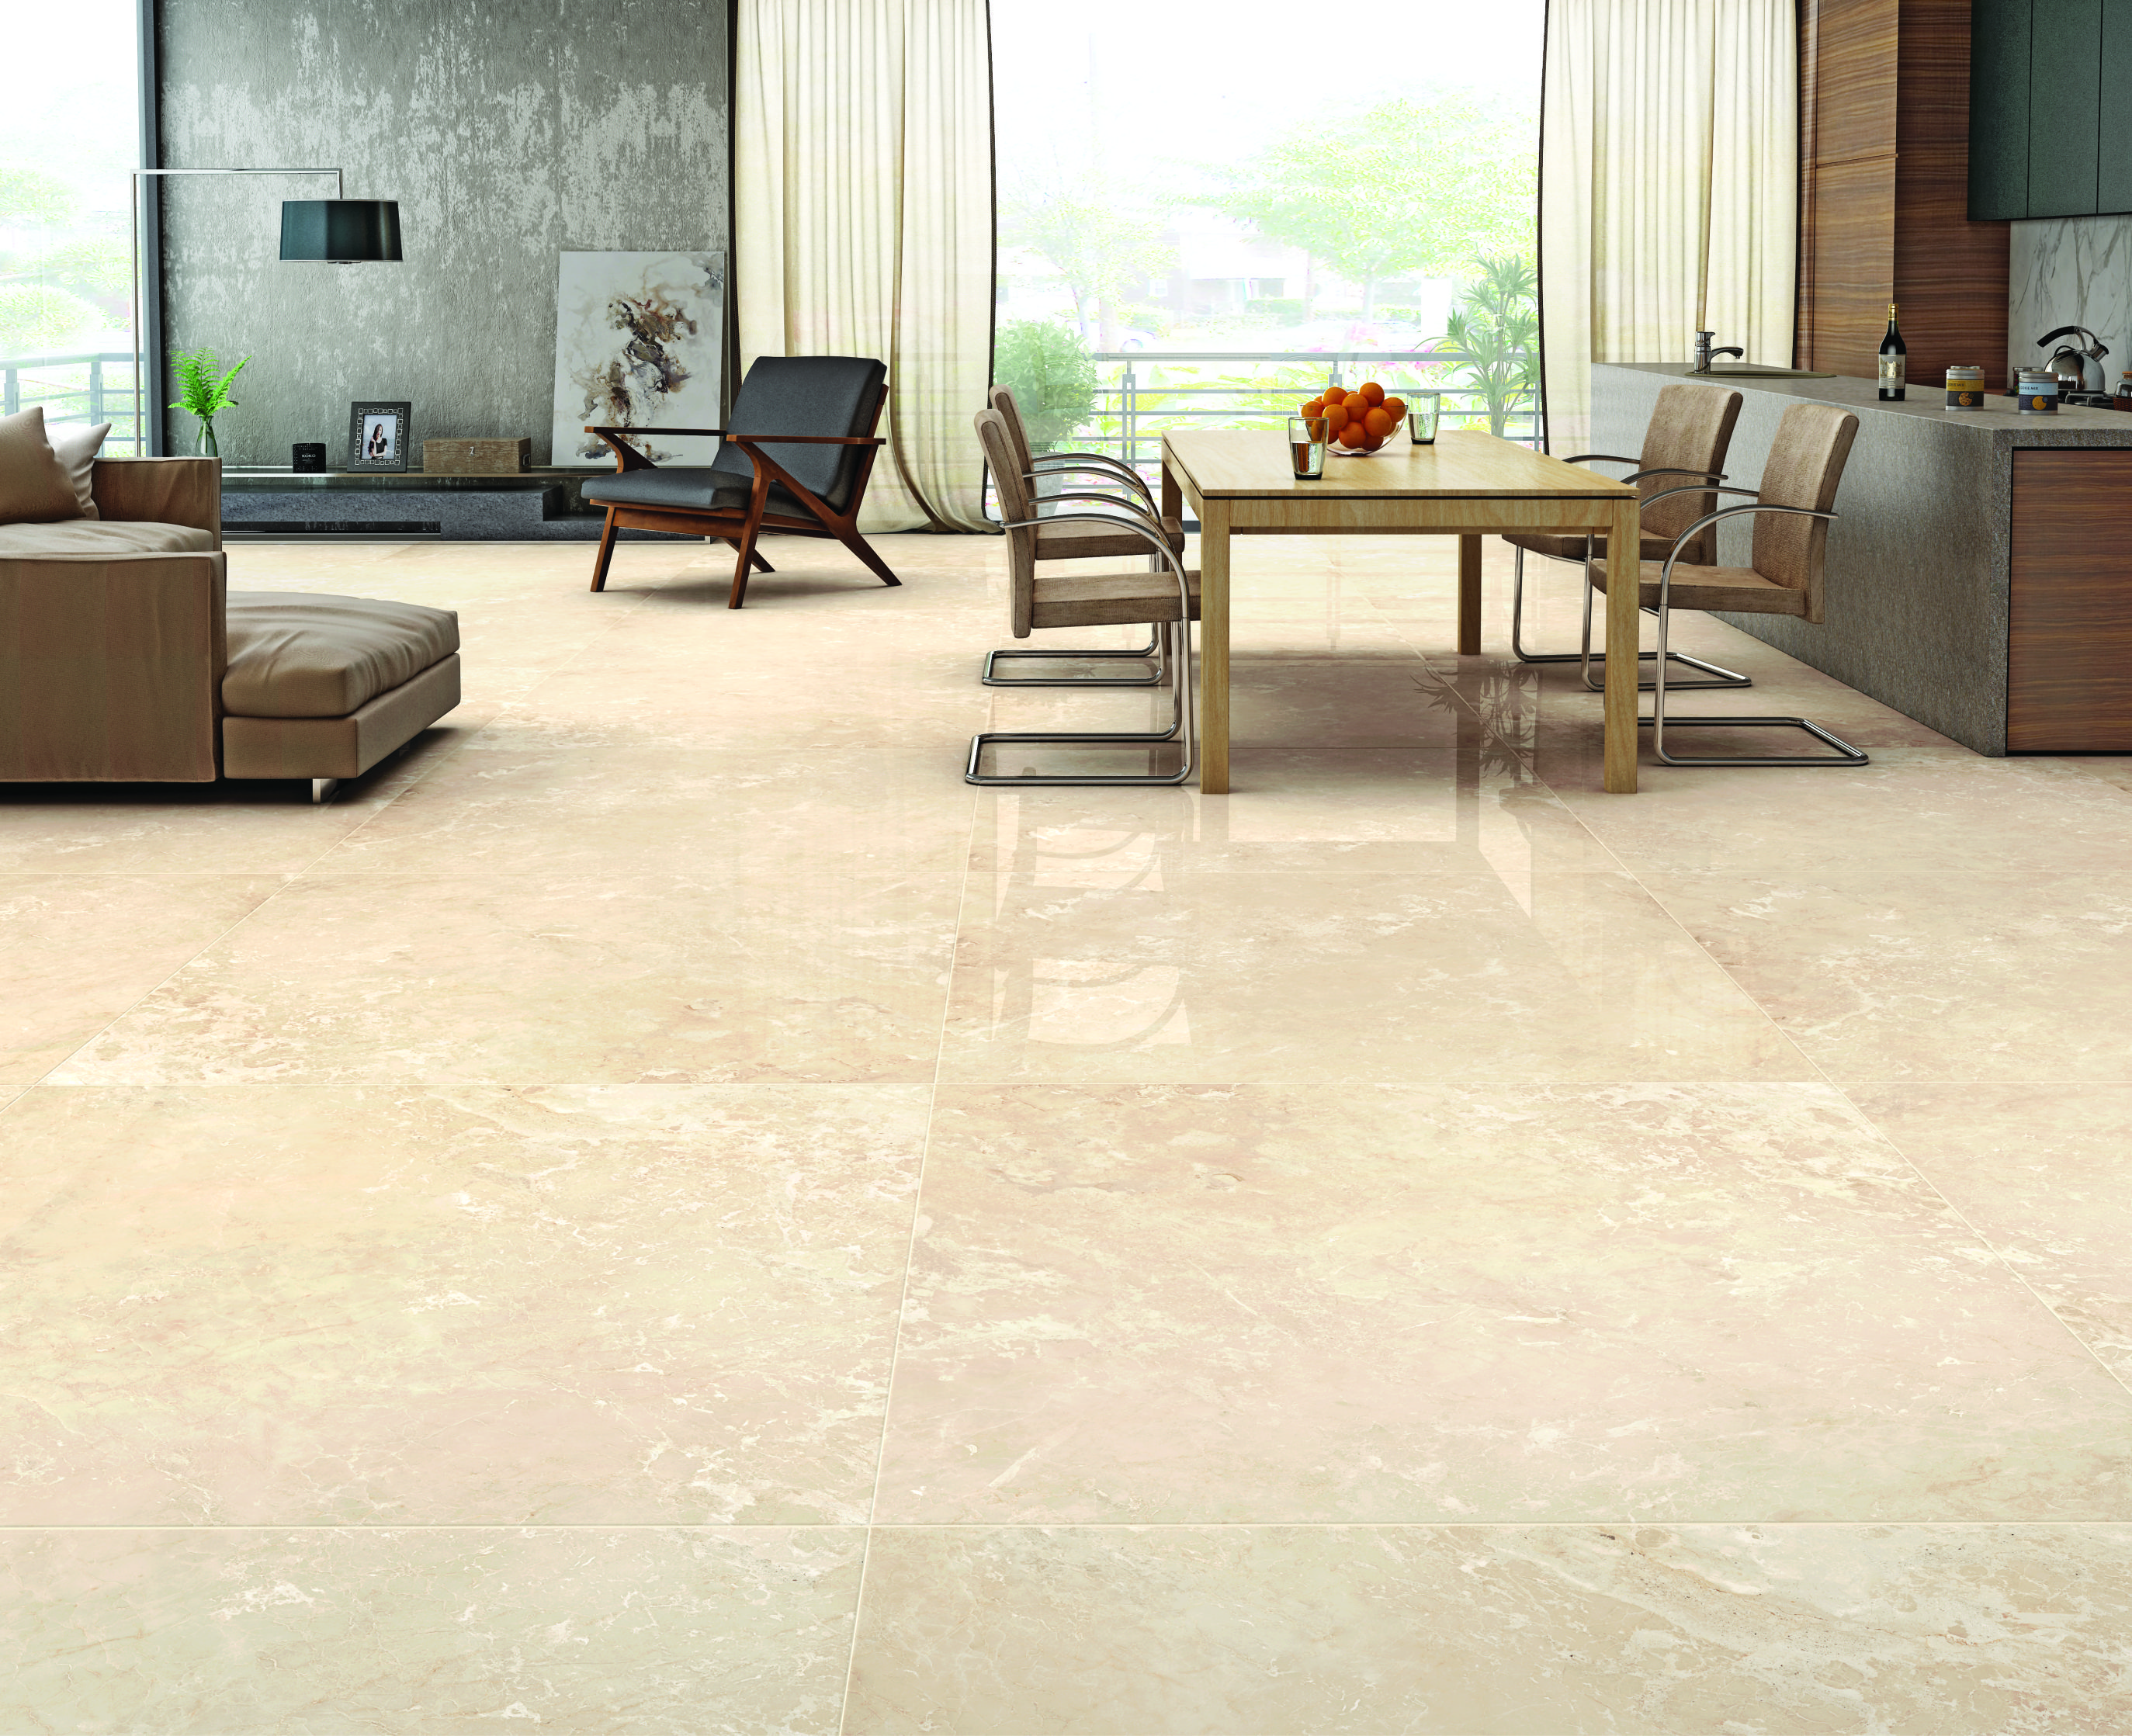 12 best scs marble images on pinterest wall tiles in india and floor tiles at simpolo ceramics dailygadgetfo Gallery